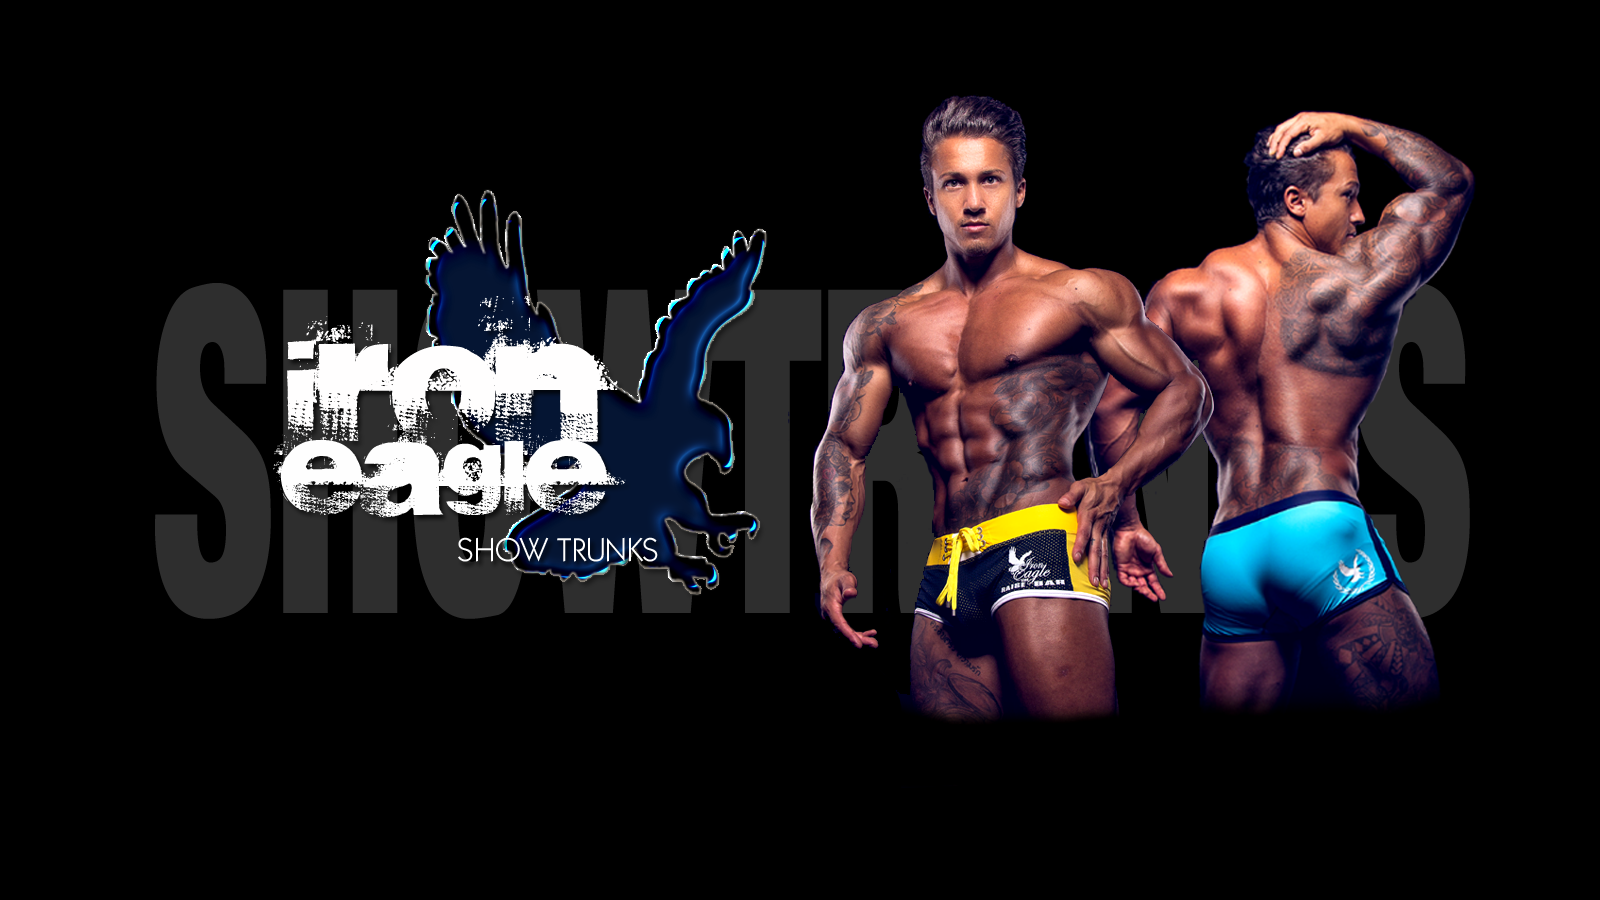 d04c454aa1534 Iron Eagle posing trunks and show shorts for fitness and bodybuilding shows